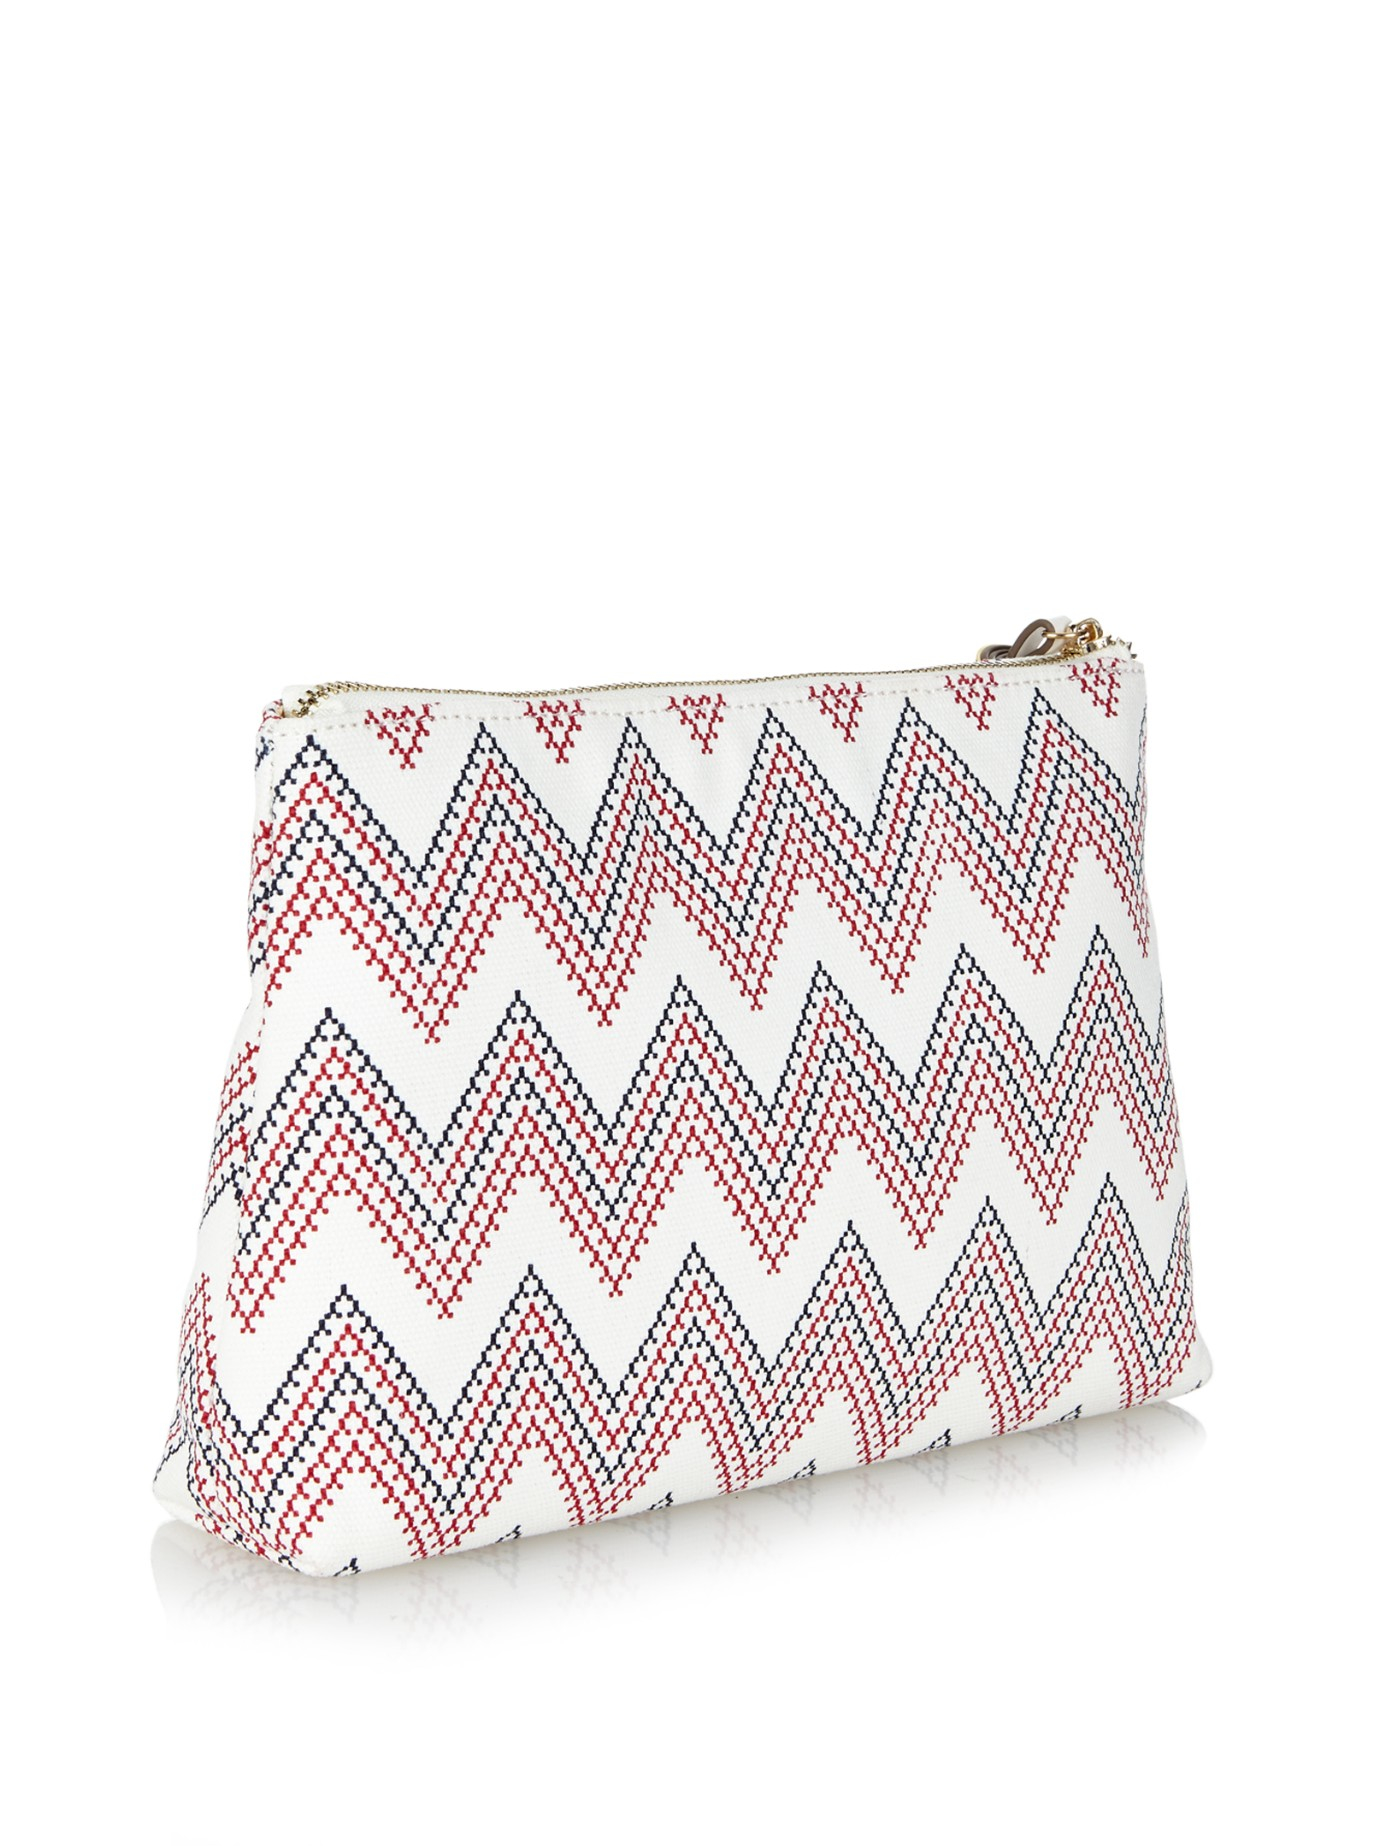 chlo bags - Melissa odabash Ibiza Aztec-print Canvas Clutch in Multicolor (RED ...